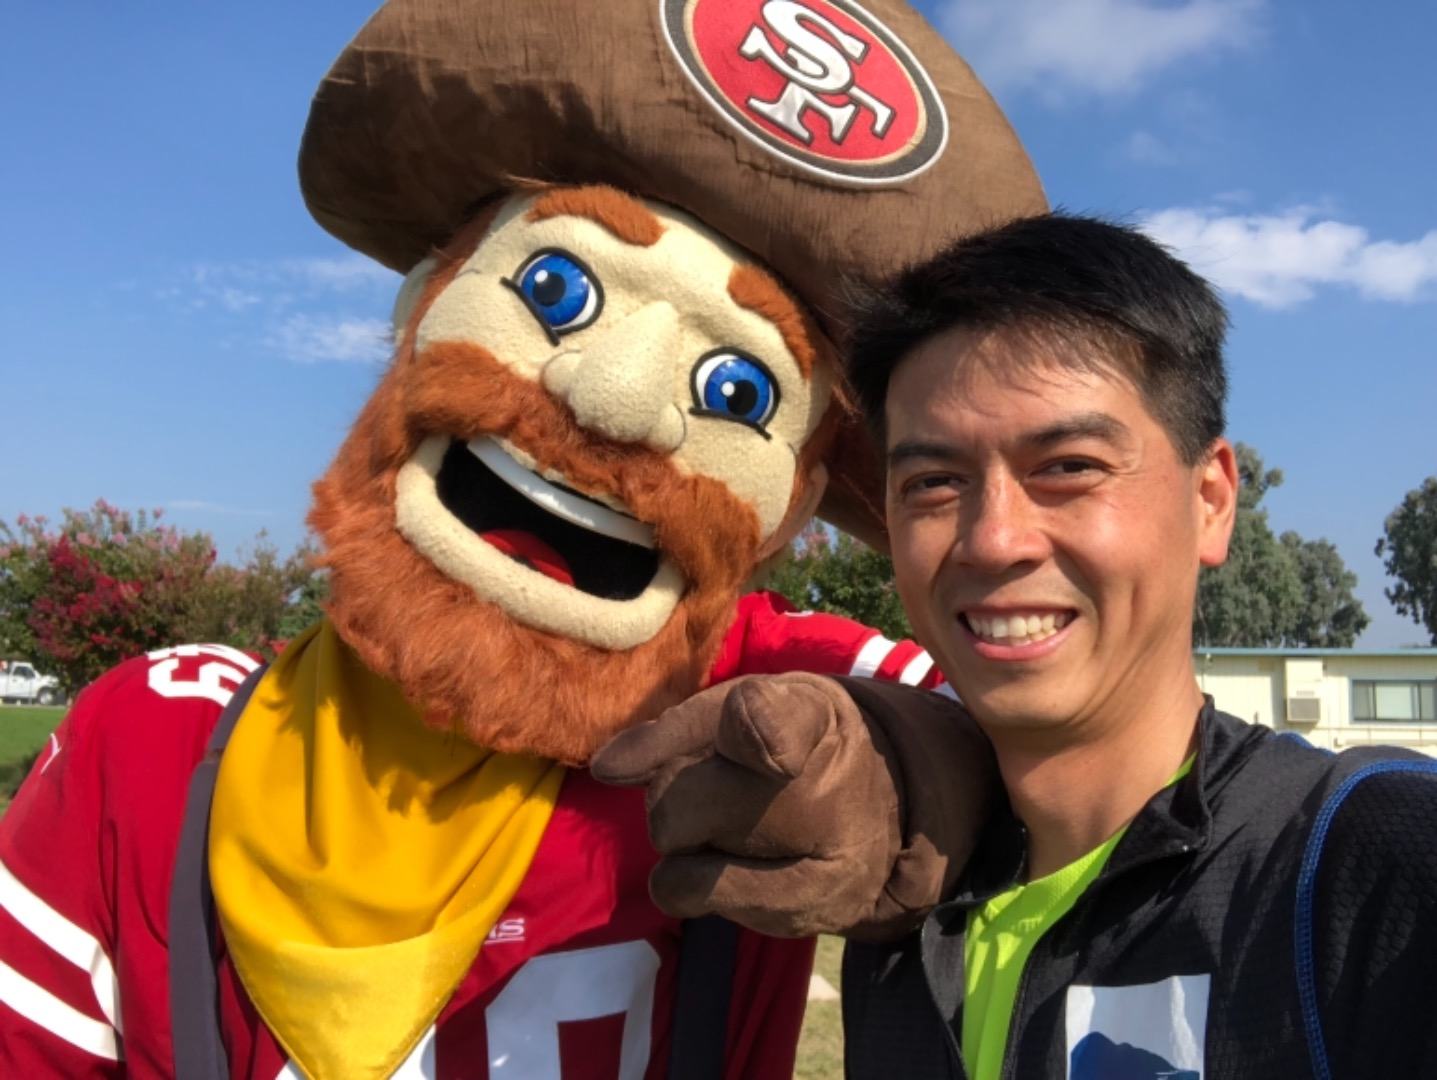 49ers Fun Run